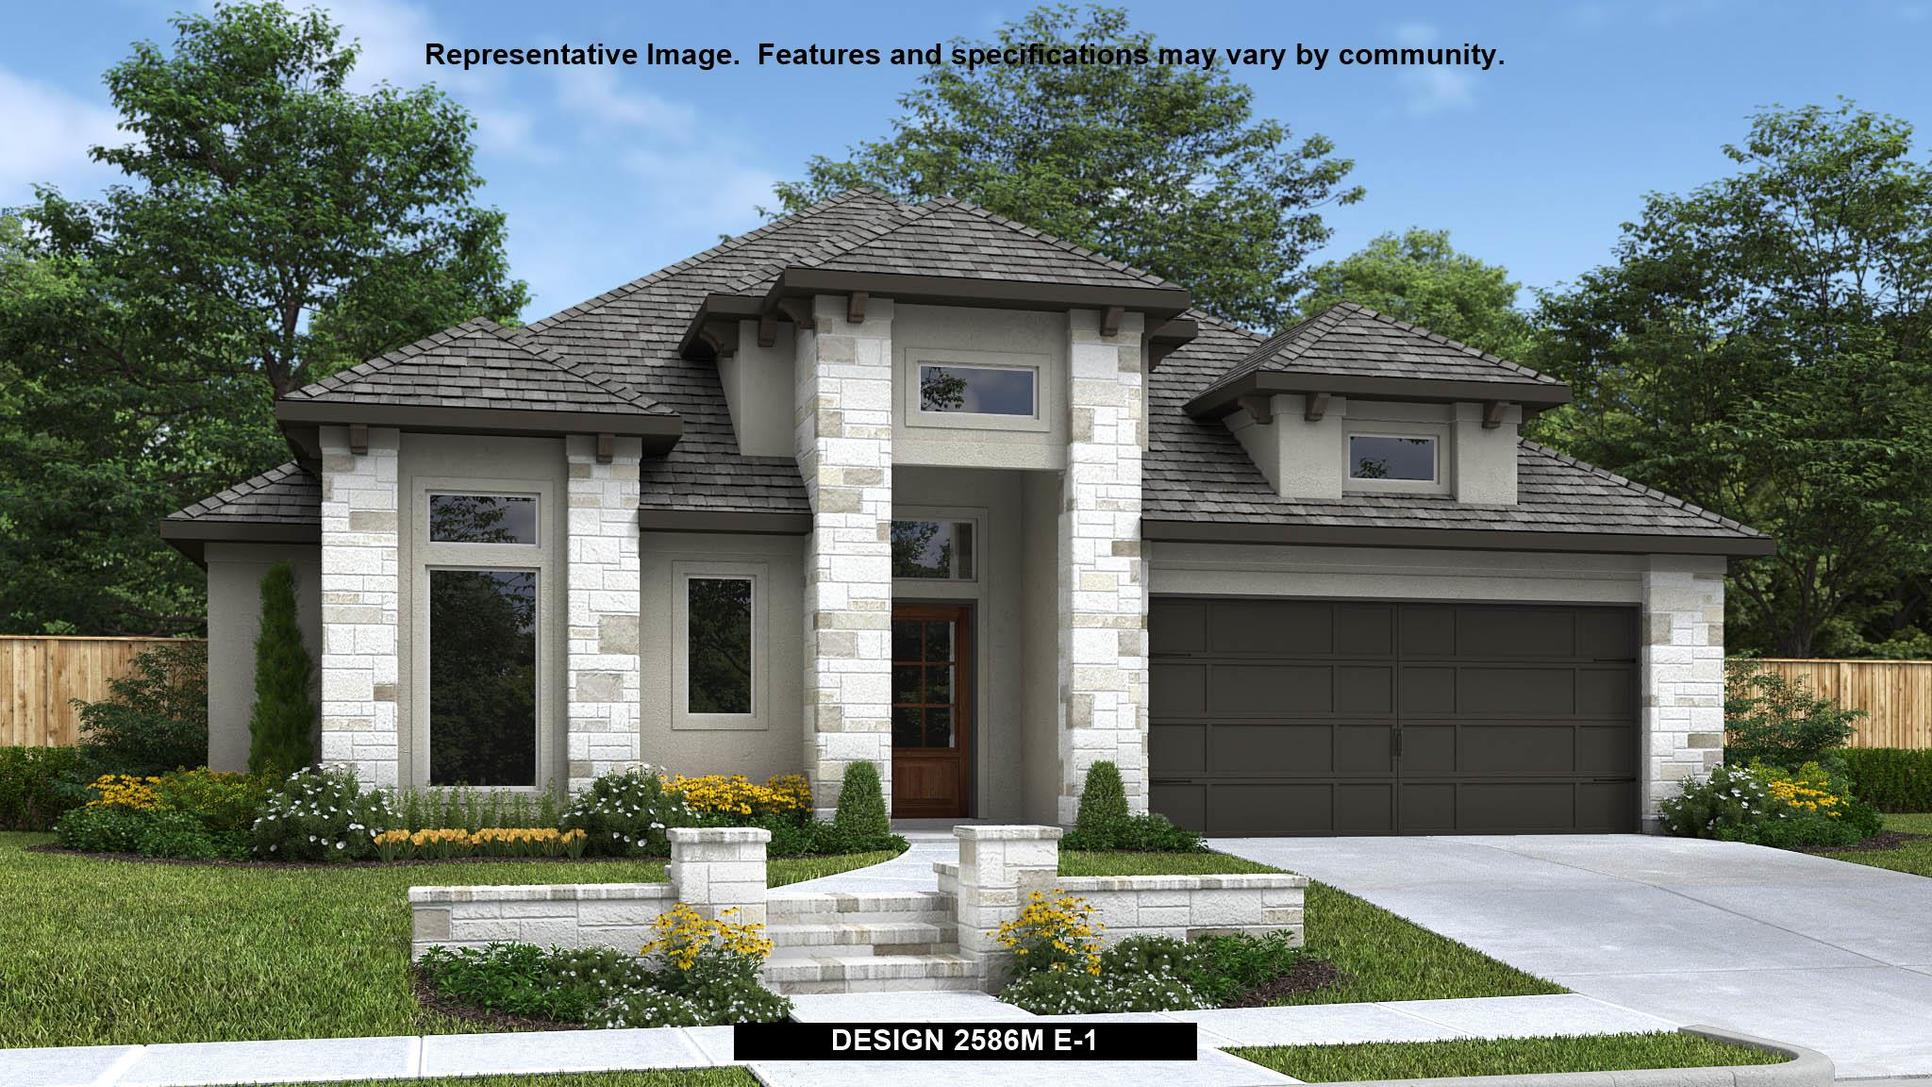 Plan 2586M:Representative photo.  Features and specifications may vary by community.